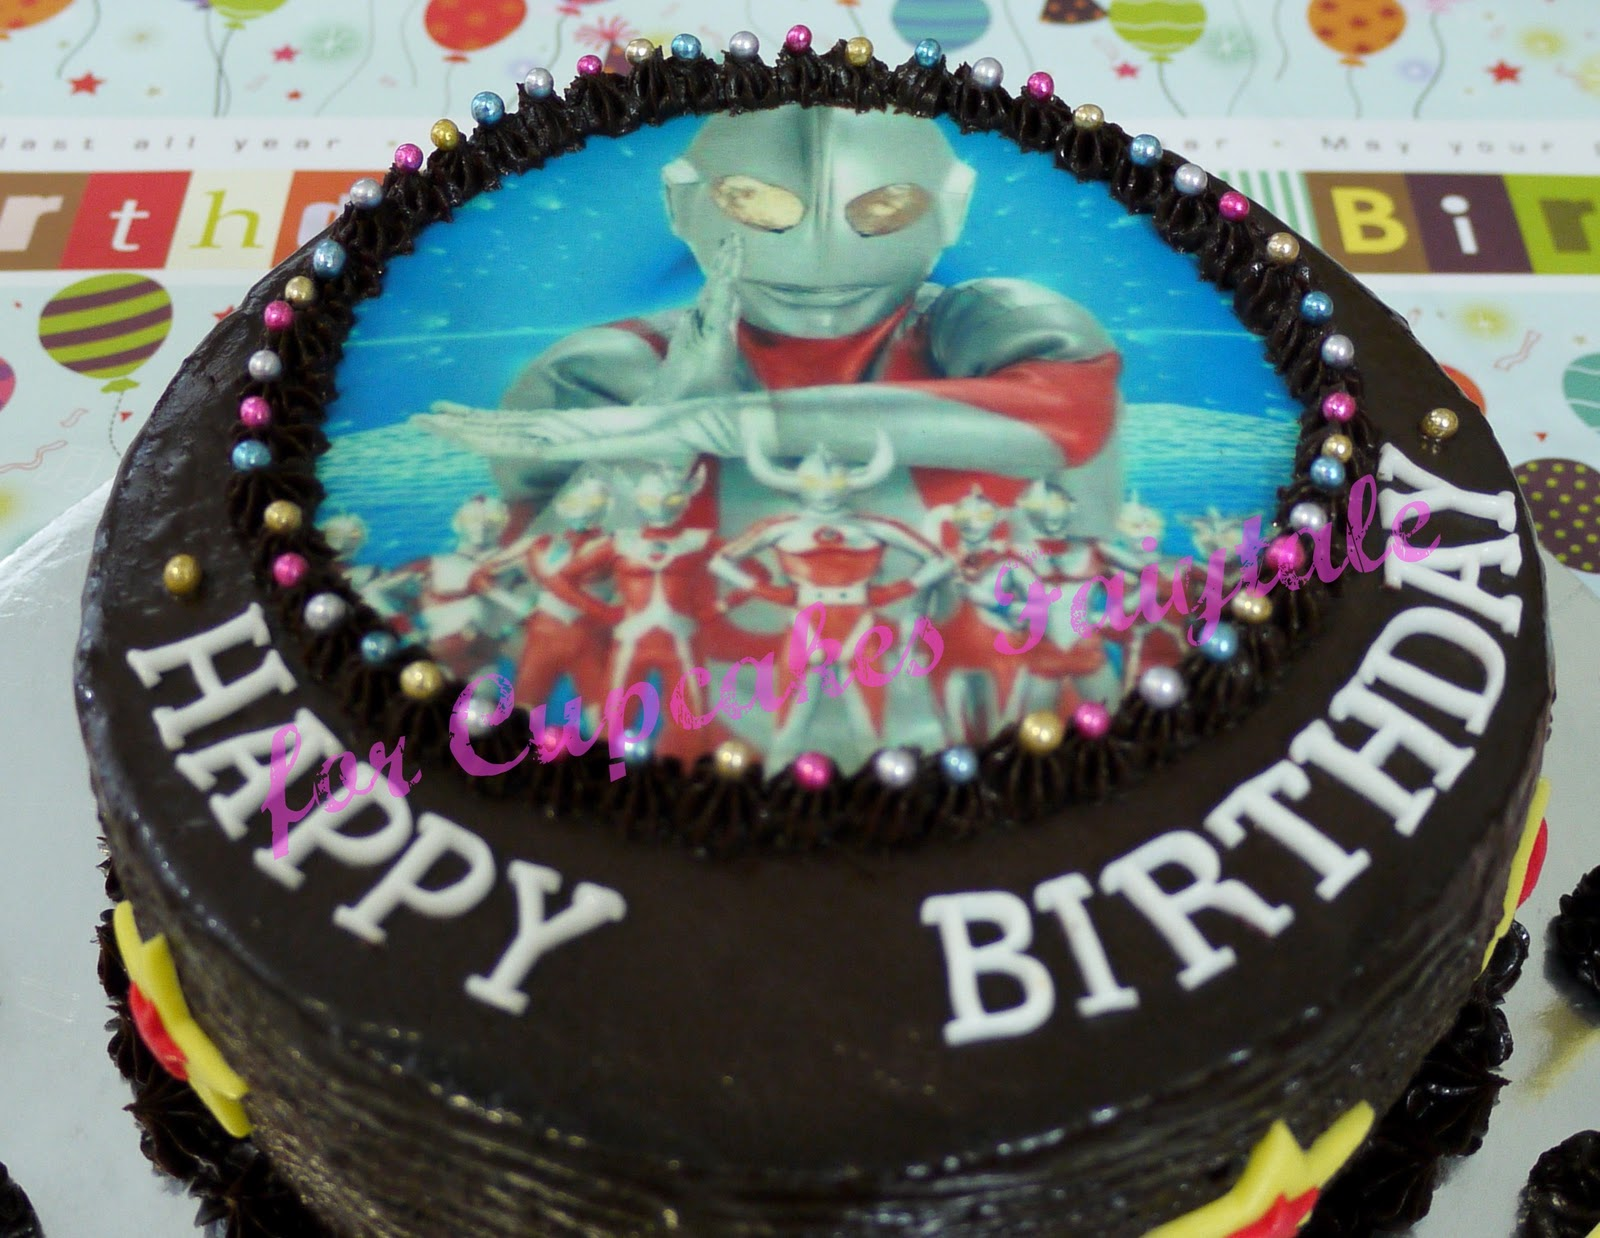 Cupcakes Fairytale RAPHAELS 3RH BIRTHDAY ULTRAMAN BIRTHDAY CAKE